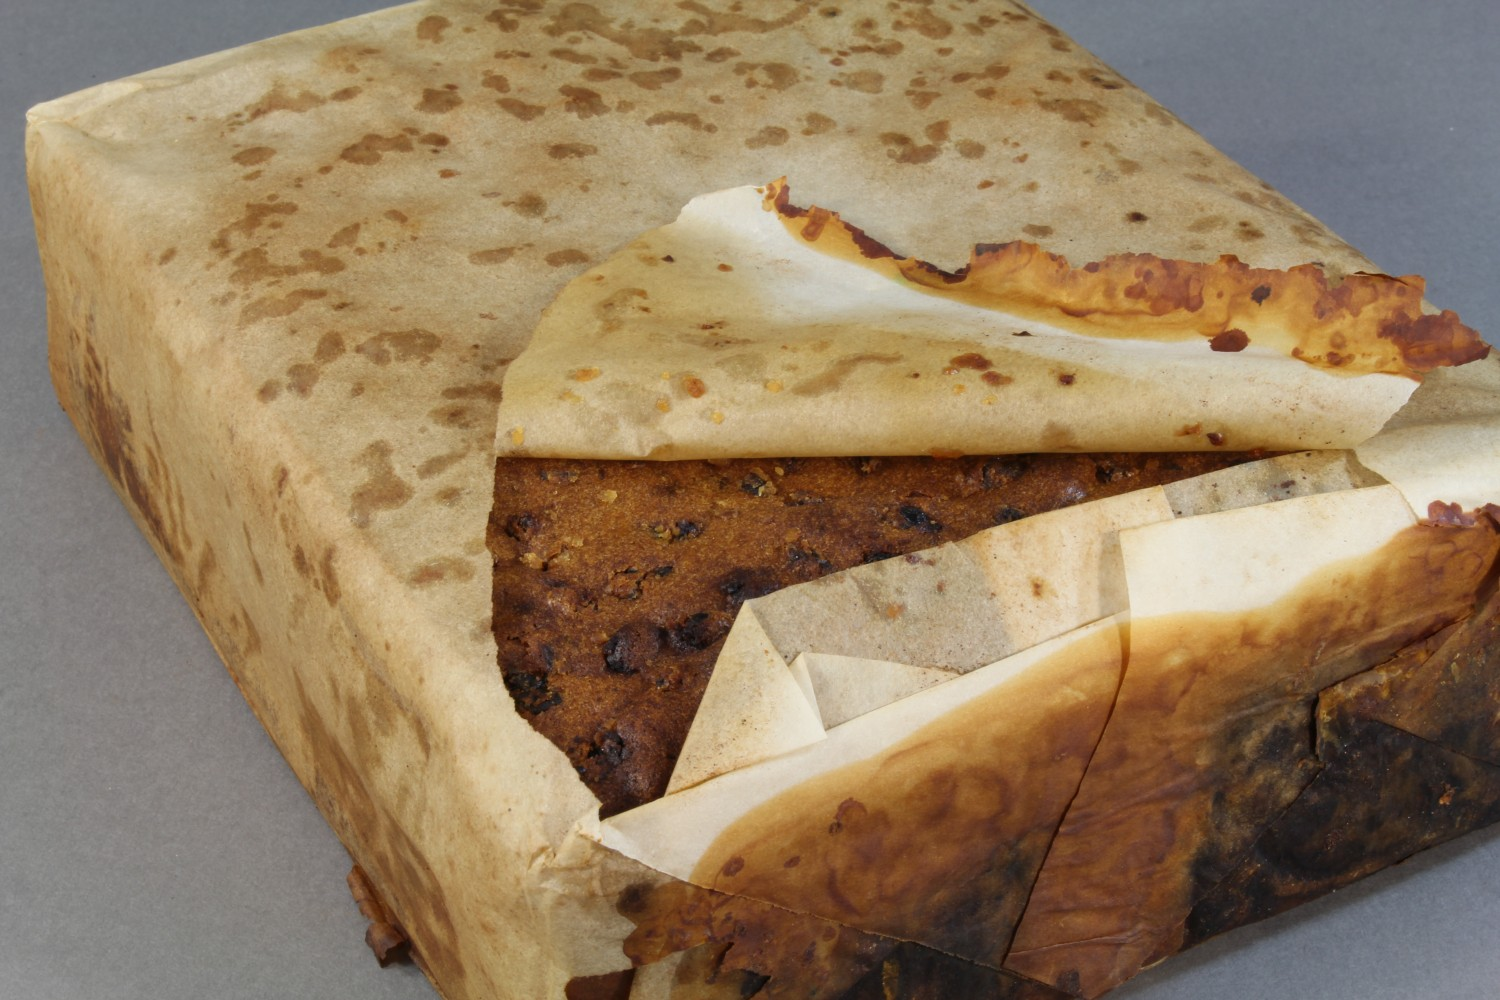 Century-Old Fruit Cake Found in Antarctica is 'Almost Edible'